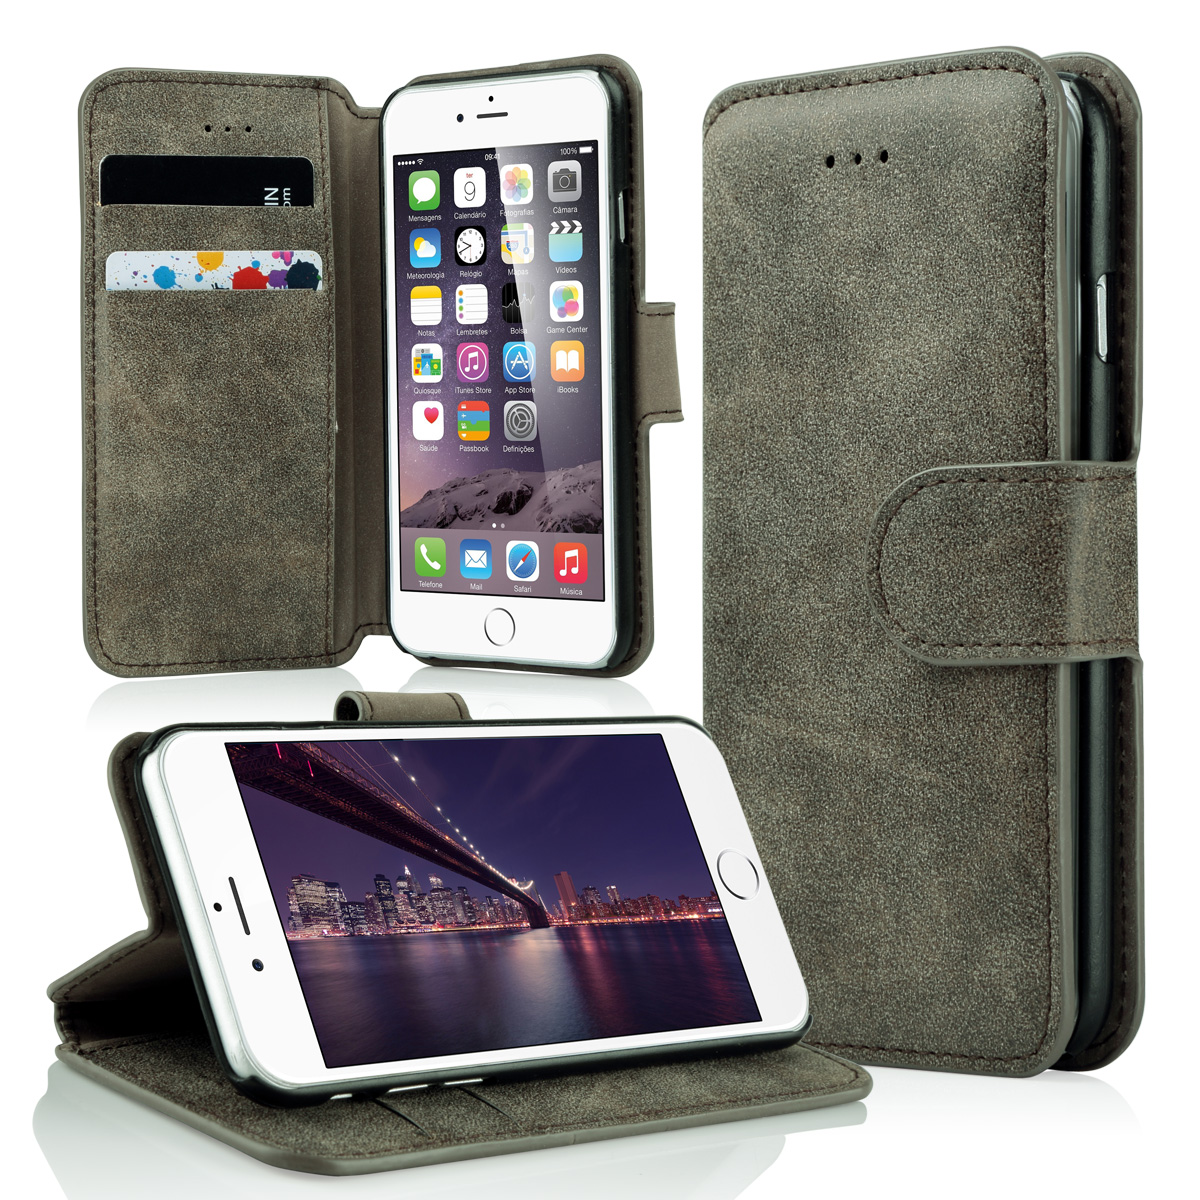 ULAK Synthetic Wallet Foldable Media Stand Case for Apple iPhone 6 plus 5.5 inch/iPhone 6S plus 5.5 inch (Dark Brown)(China (Mainland))